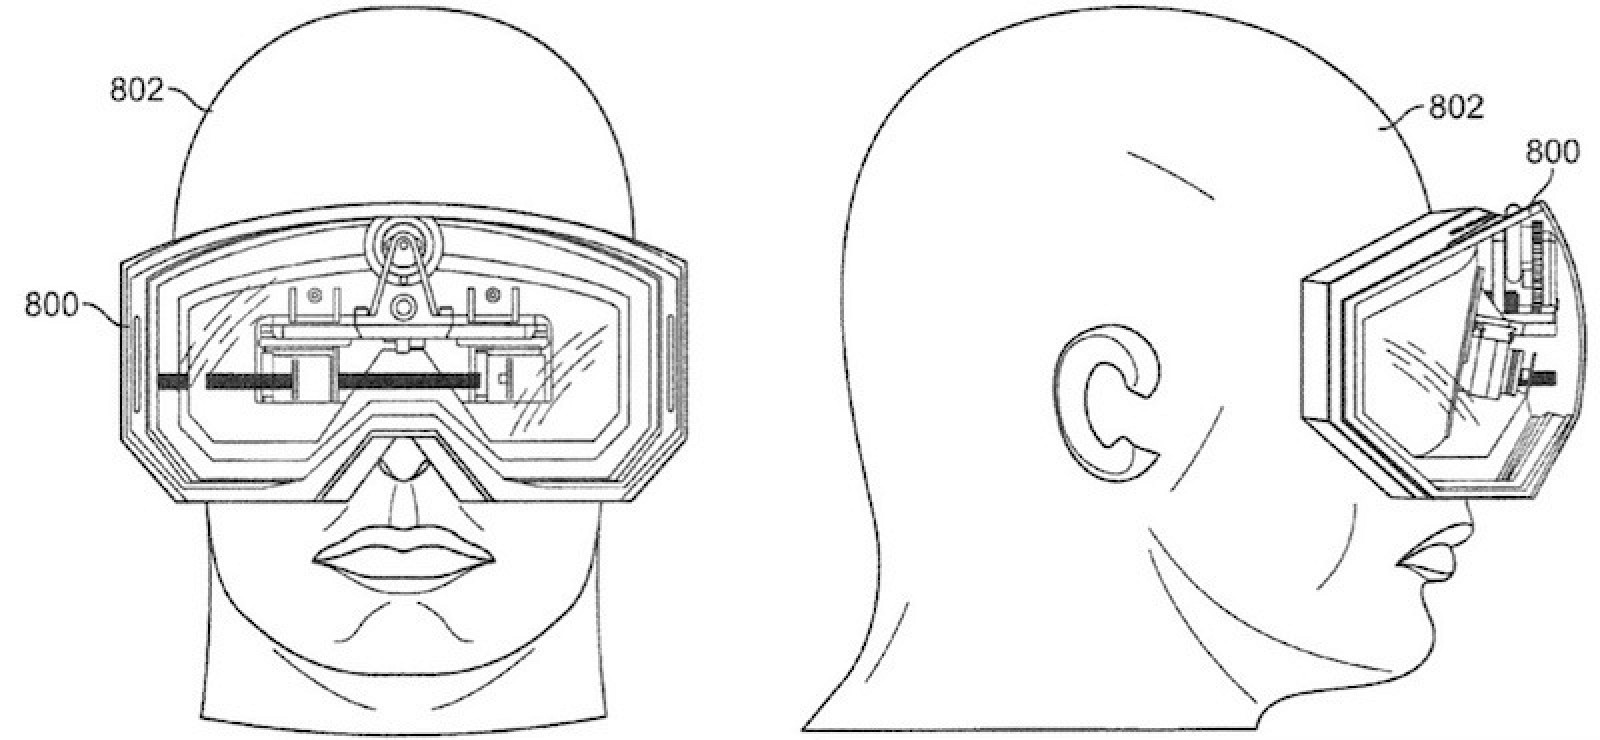 Apple's Work on Video Goggles Highlighted in Newly Granted